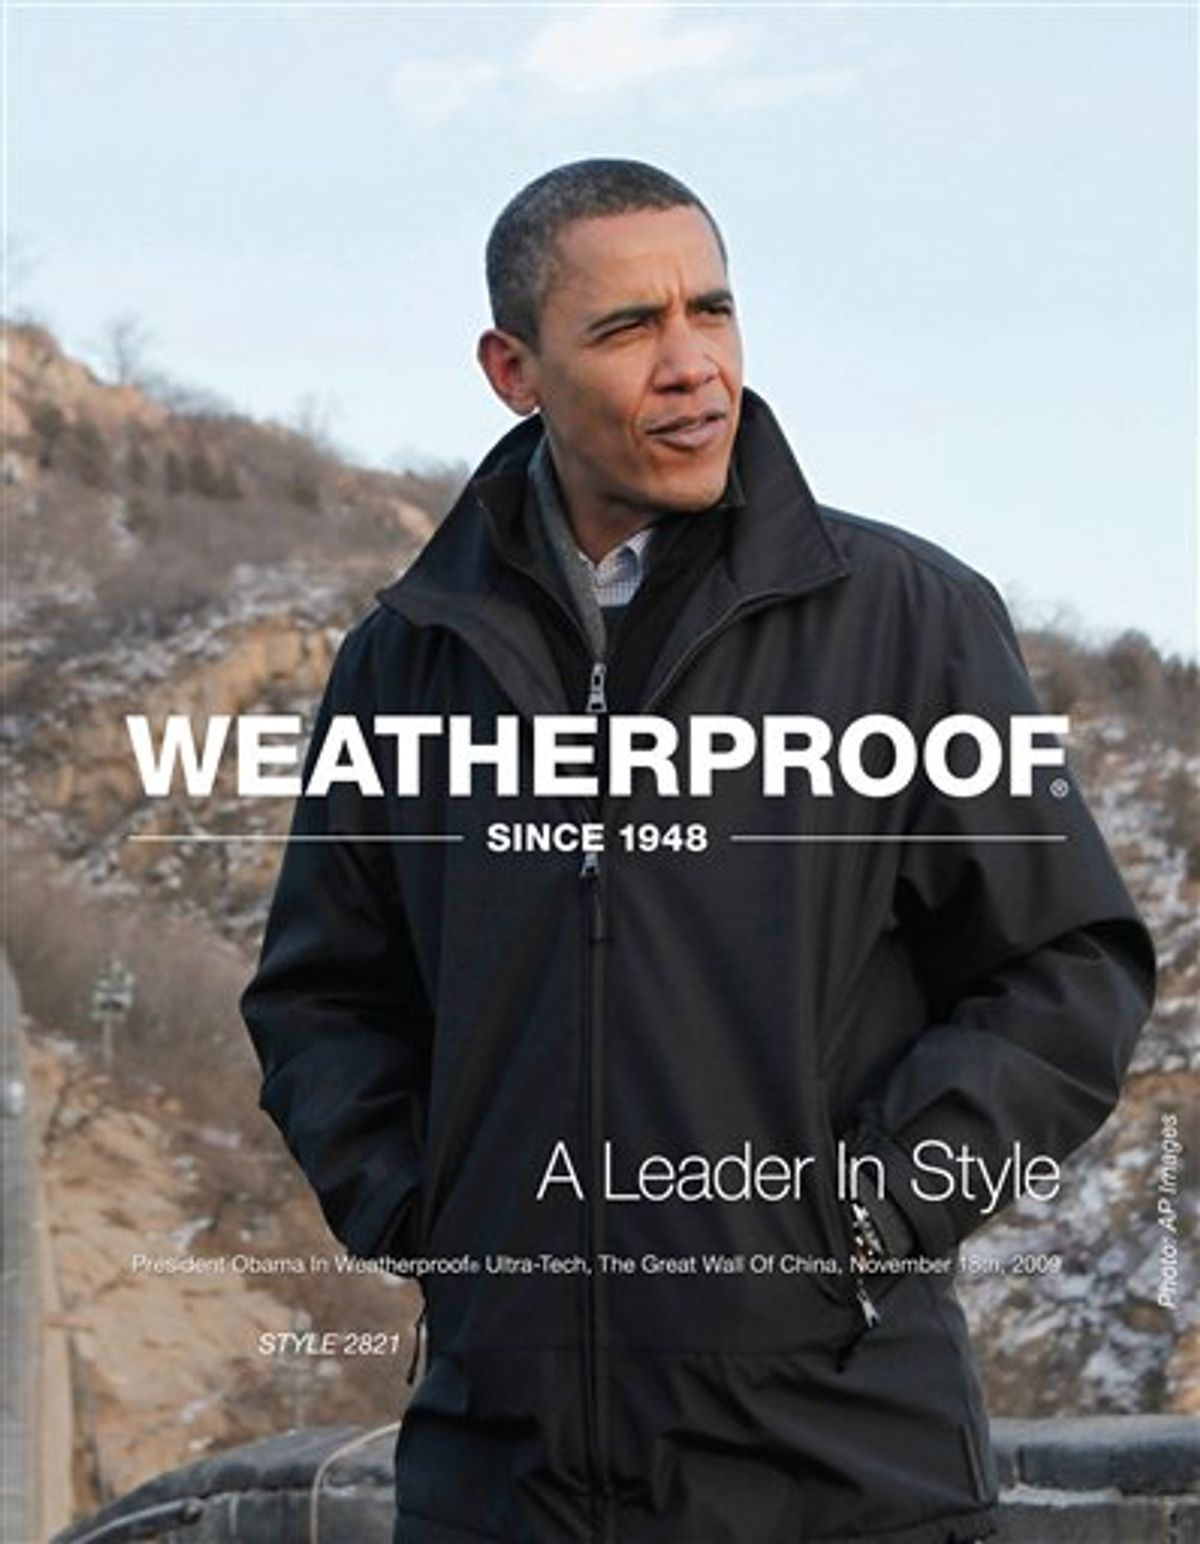 This photo released by AP Images and Weatherproof Garment Company shows President Obama wearing one of their coats while in China.(AP Photo/Weatherproof Garment Company,AP Images)**NO SALES** (AP)